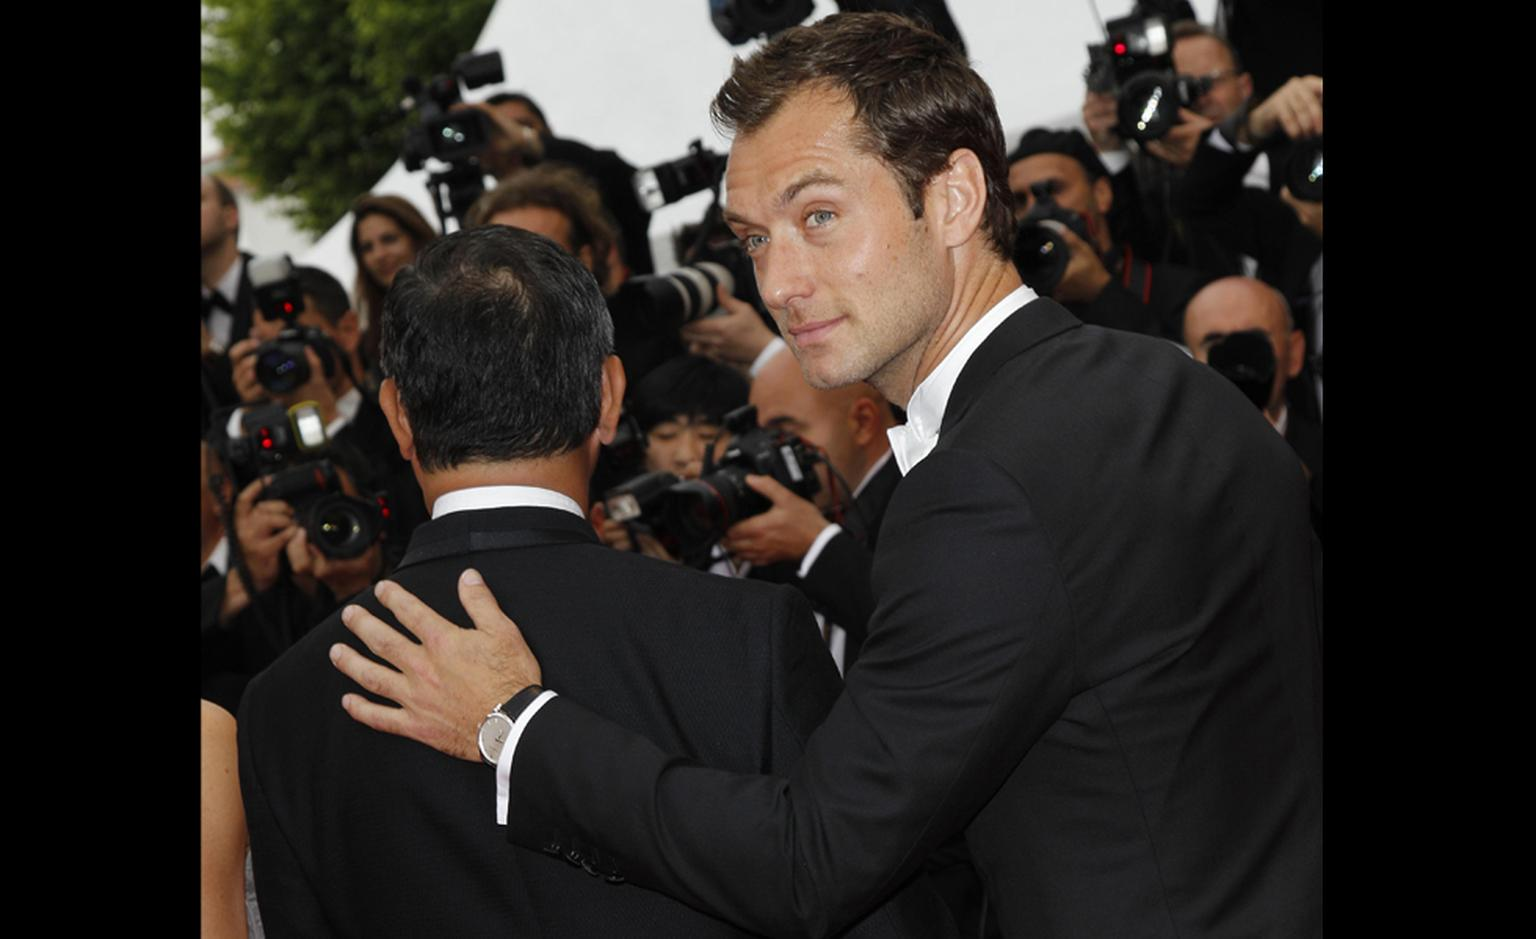 Jude Law with LUC Chopard XPS white gold watch at Cannes Film Festival 2011